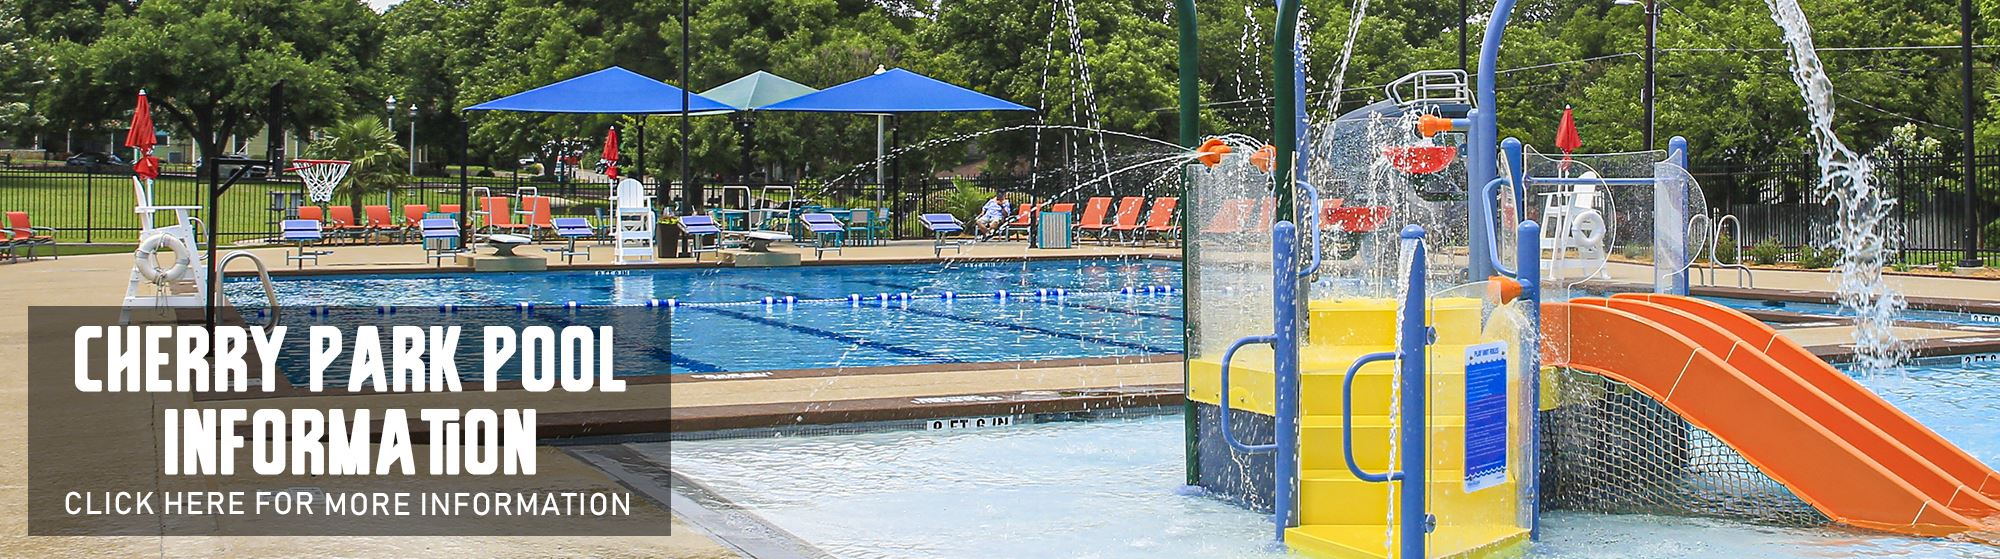 Cherry Park Pool Information